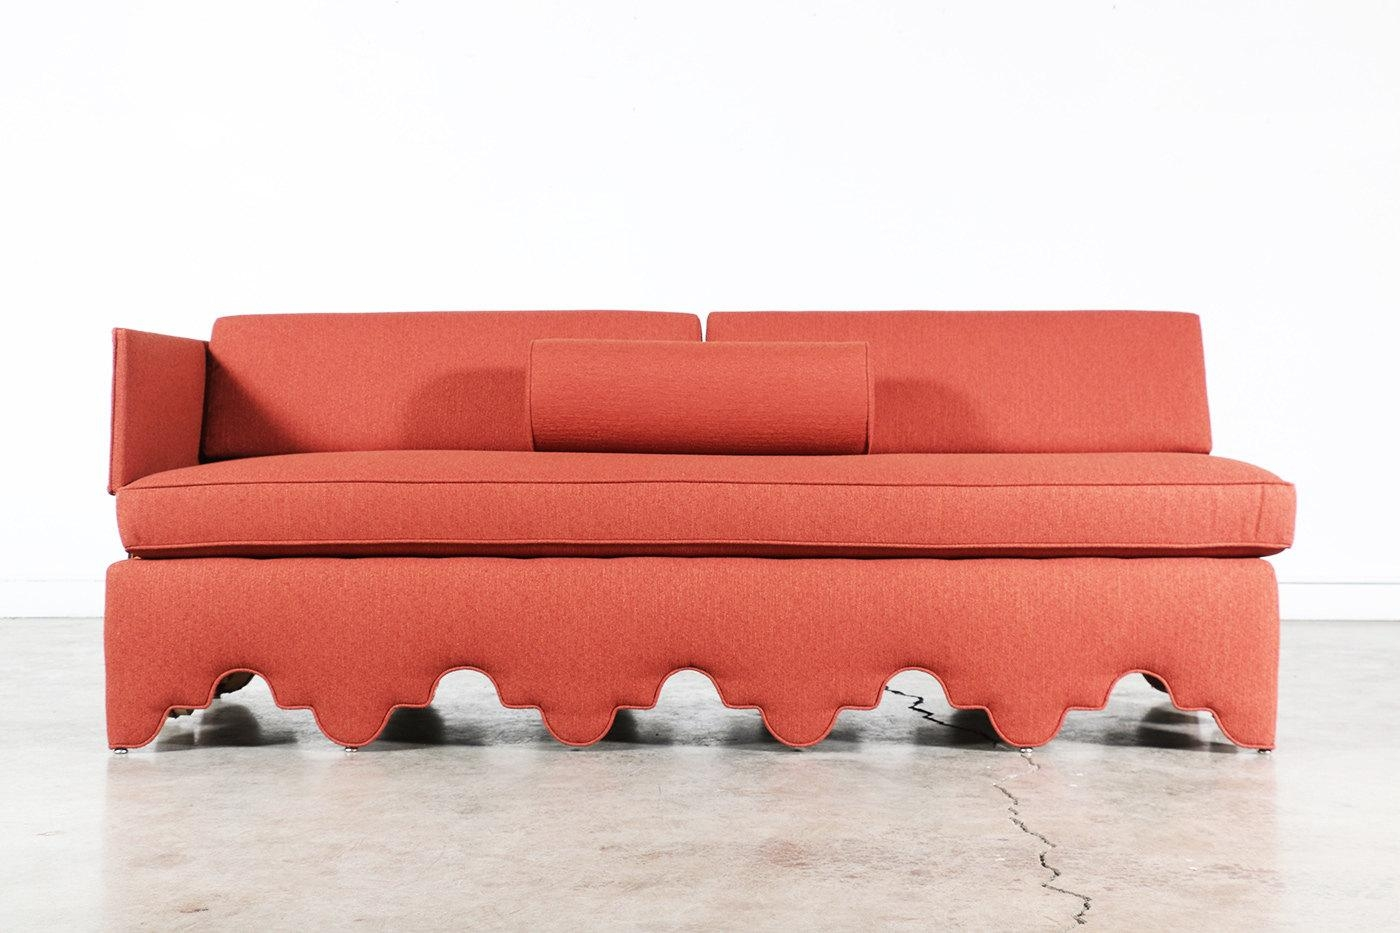 Etsy Furniture Shops: 7 Best Stores To Check Out Now – Curbed With Regard To Etsy Sofas (View 6 of 20)